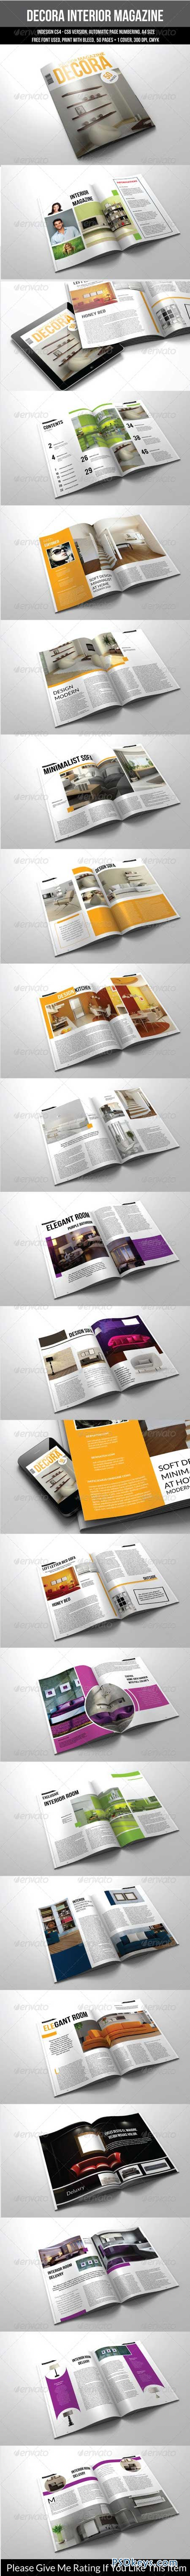 50 Pages A4 Indesign Magazine Template 7394852